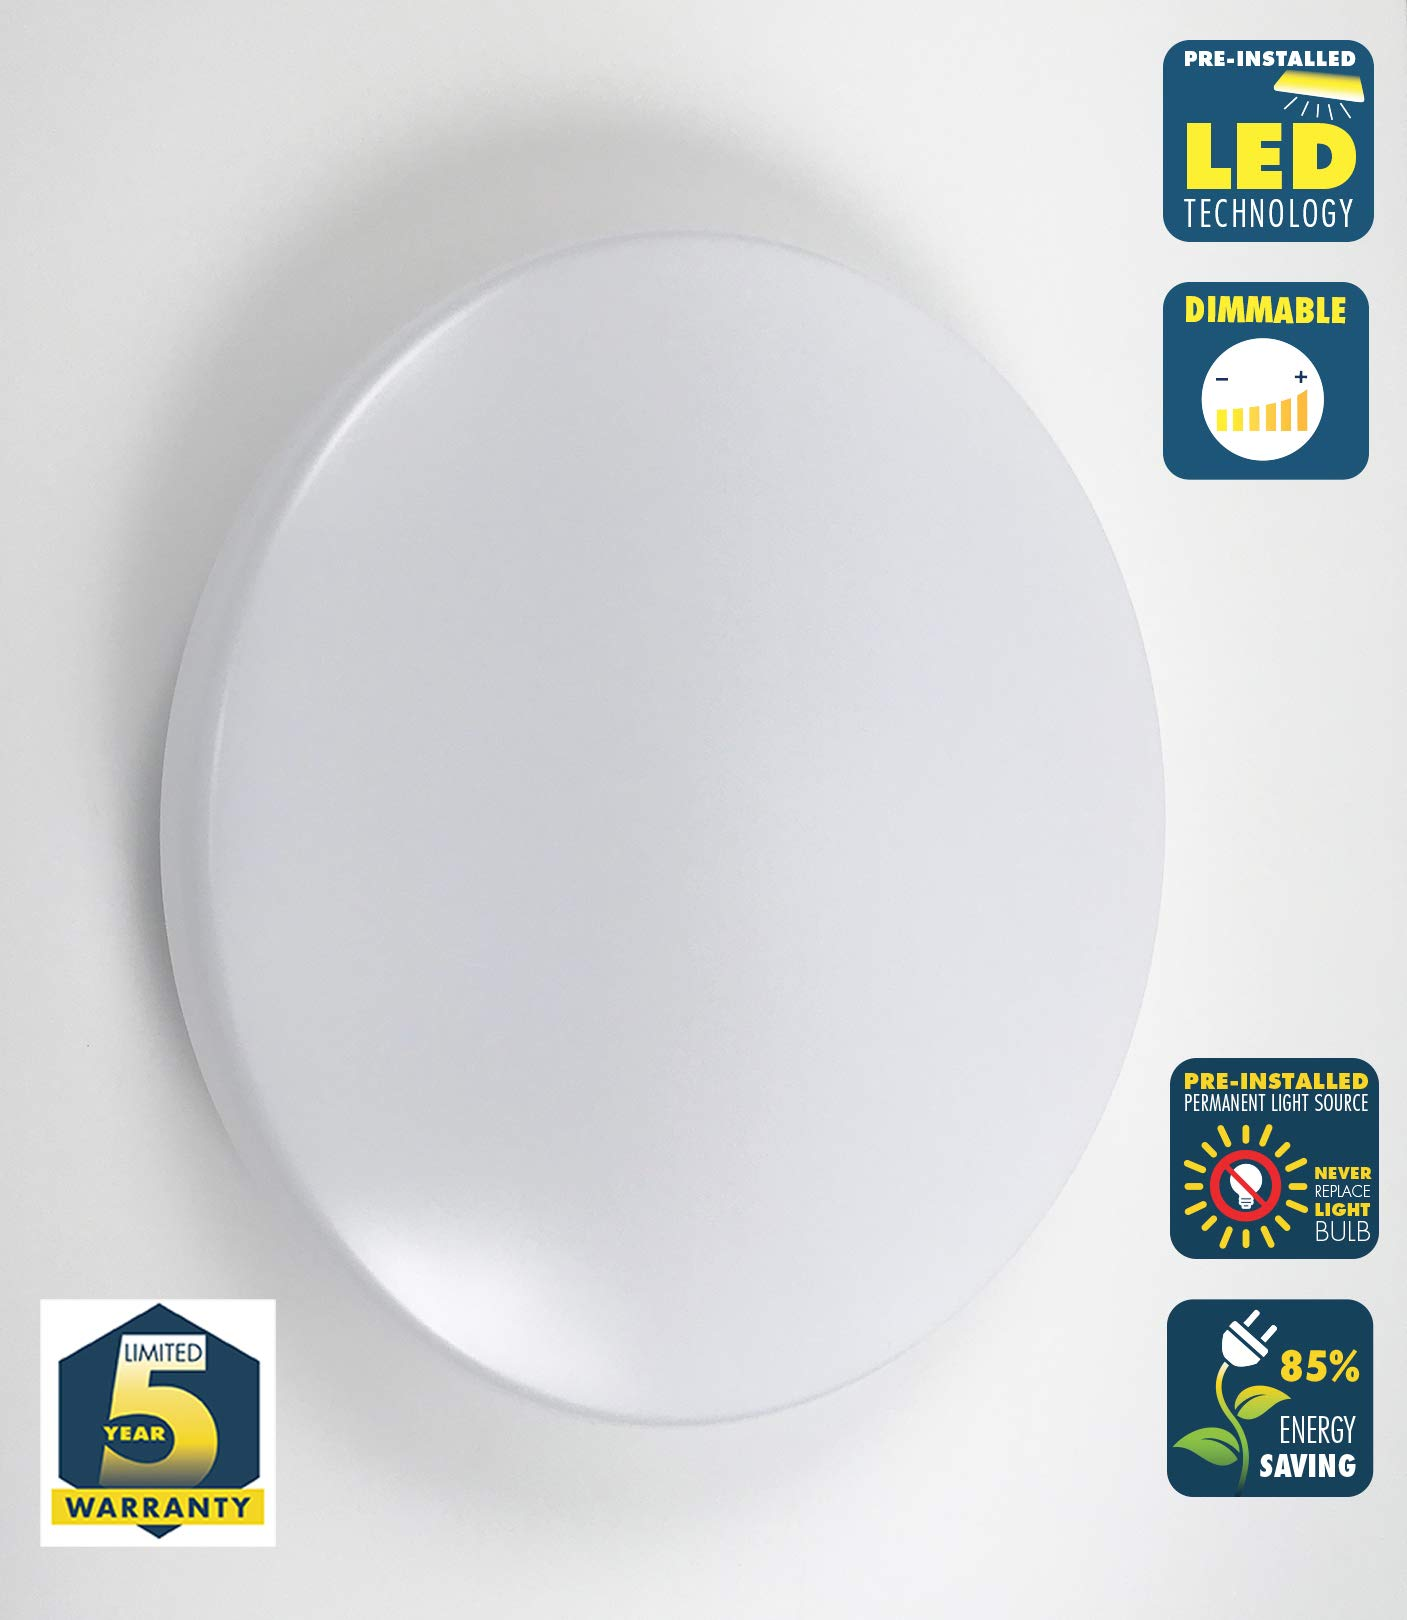 CORAMDEO 13 Inch Round LED Ceiling Light for Hallway, Bedroom, Closet and Laundry, Built in LED Gives 125W of Light with 17.5W of Power, 1300 Lumens, 3K, Dimmable, White Finish with Acrylic Cloud Lens